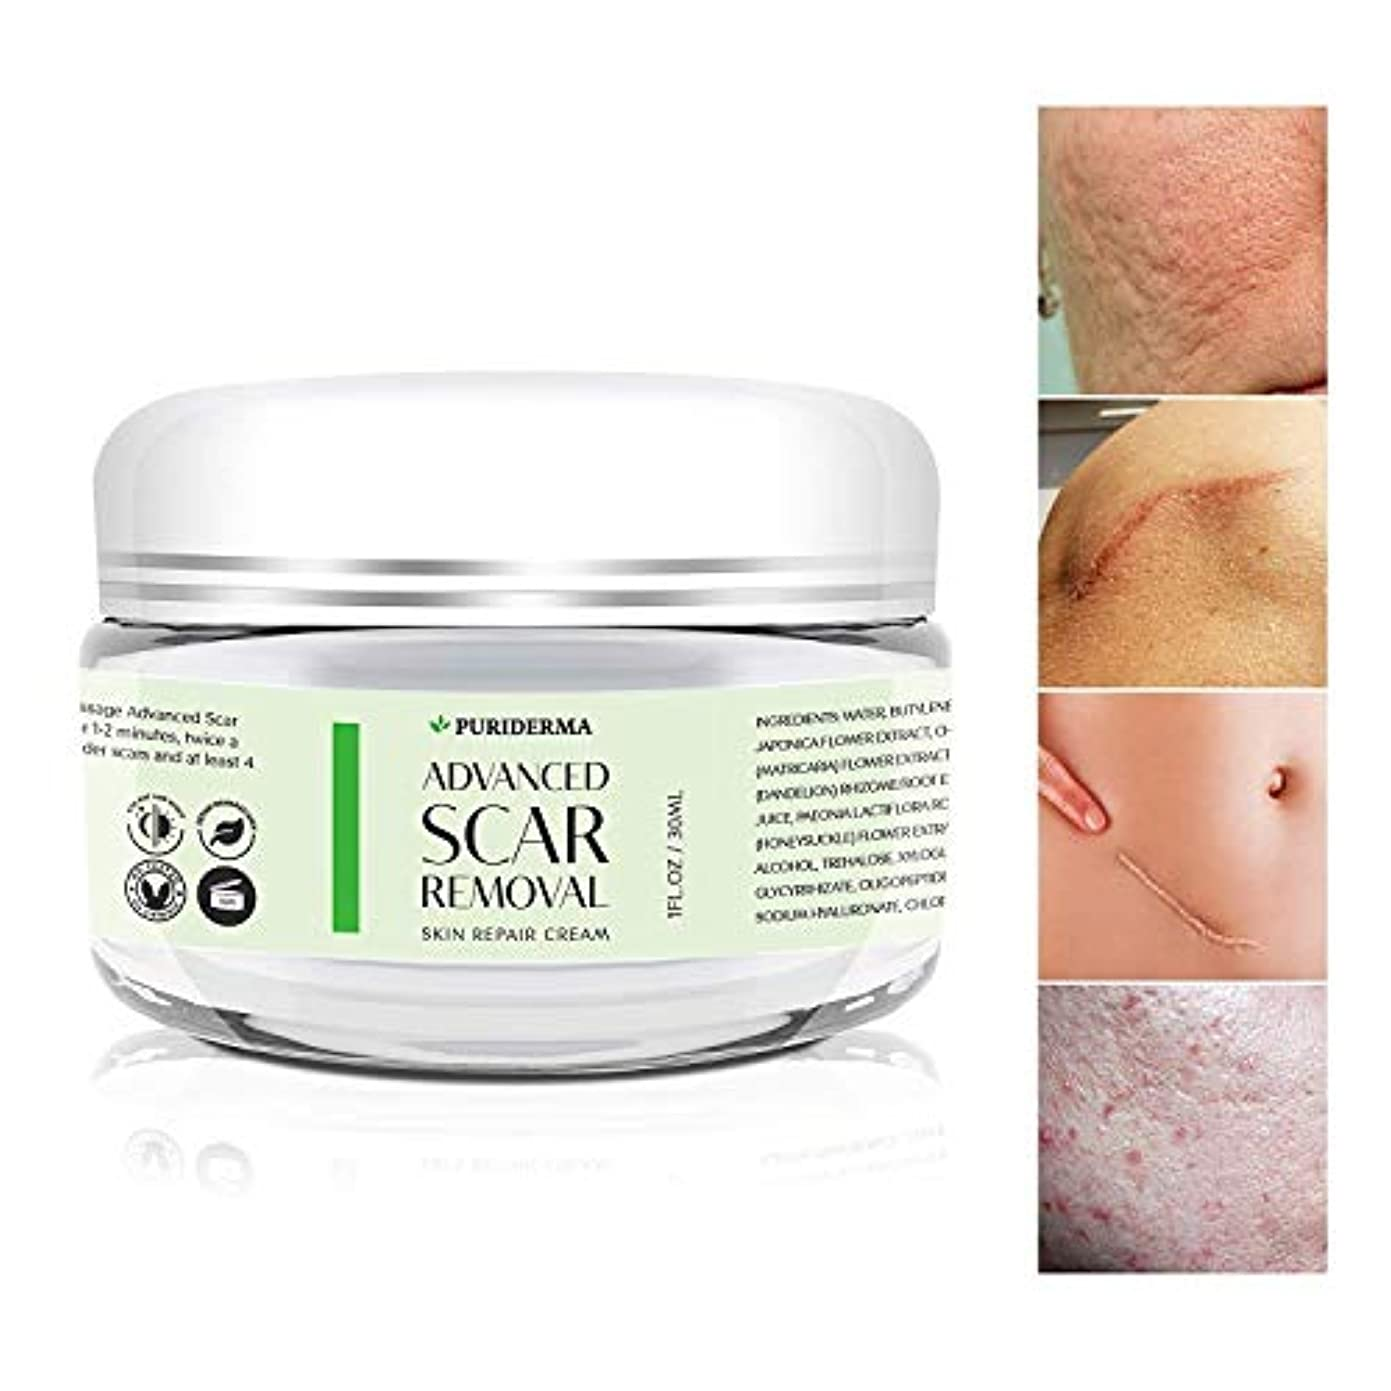 精算漏斗帰するPuriderma 社 の Advanced Scar Removal Cream (30 ml) 妊娠線 や 傷跡 修復に Advanced Treatment for Face & Body, Old & New Scars...